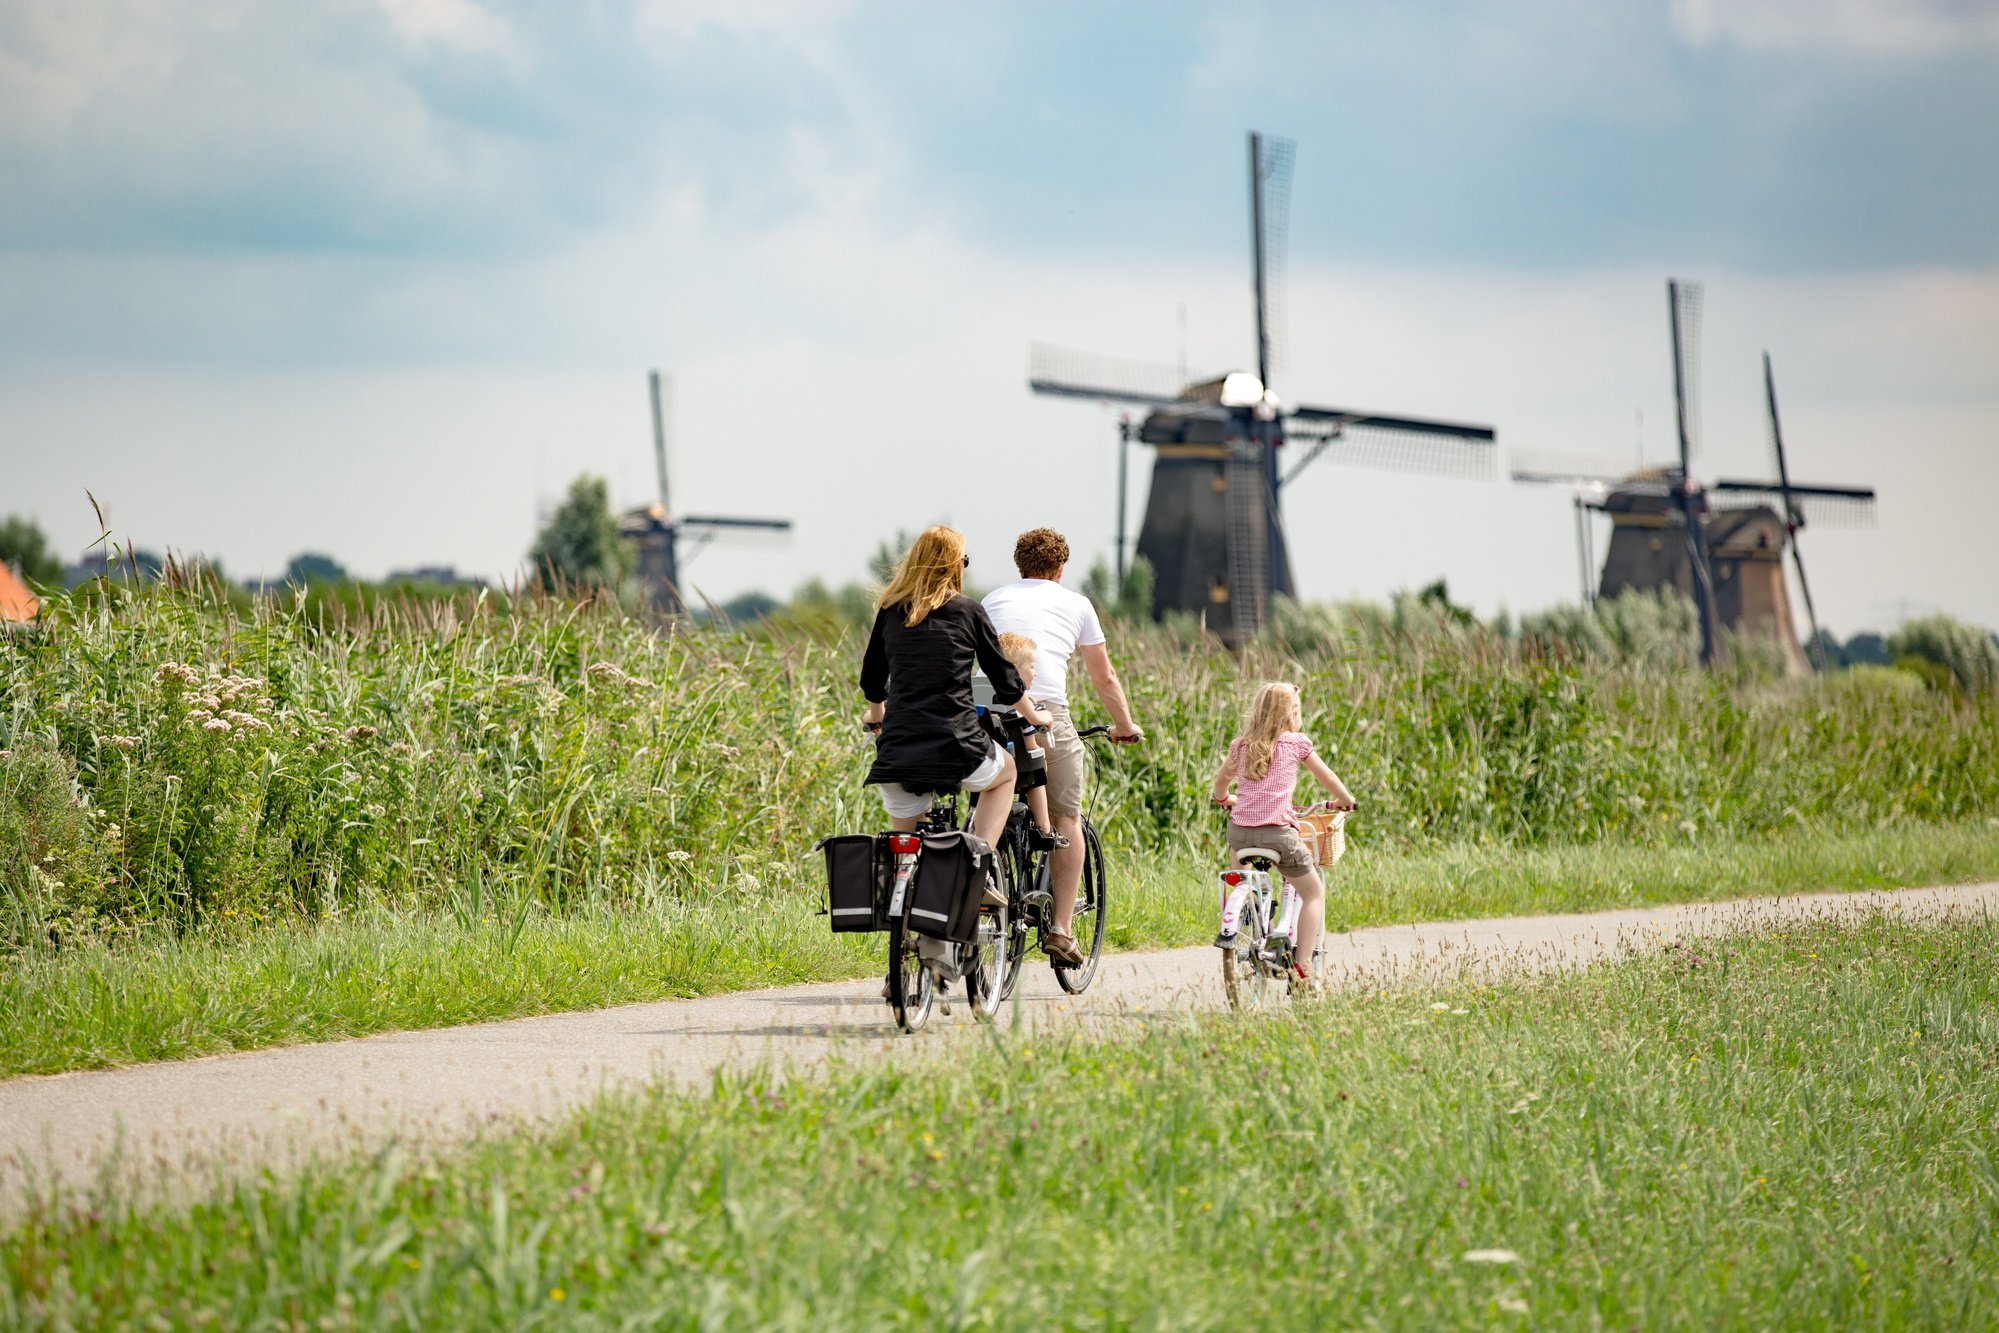 Parents and their child riding bikes near the famous windmills of Kinderdijk in the Netherlands